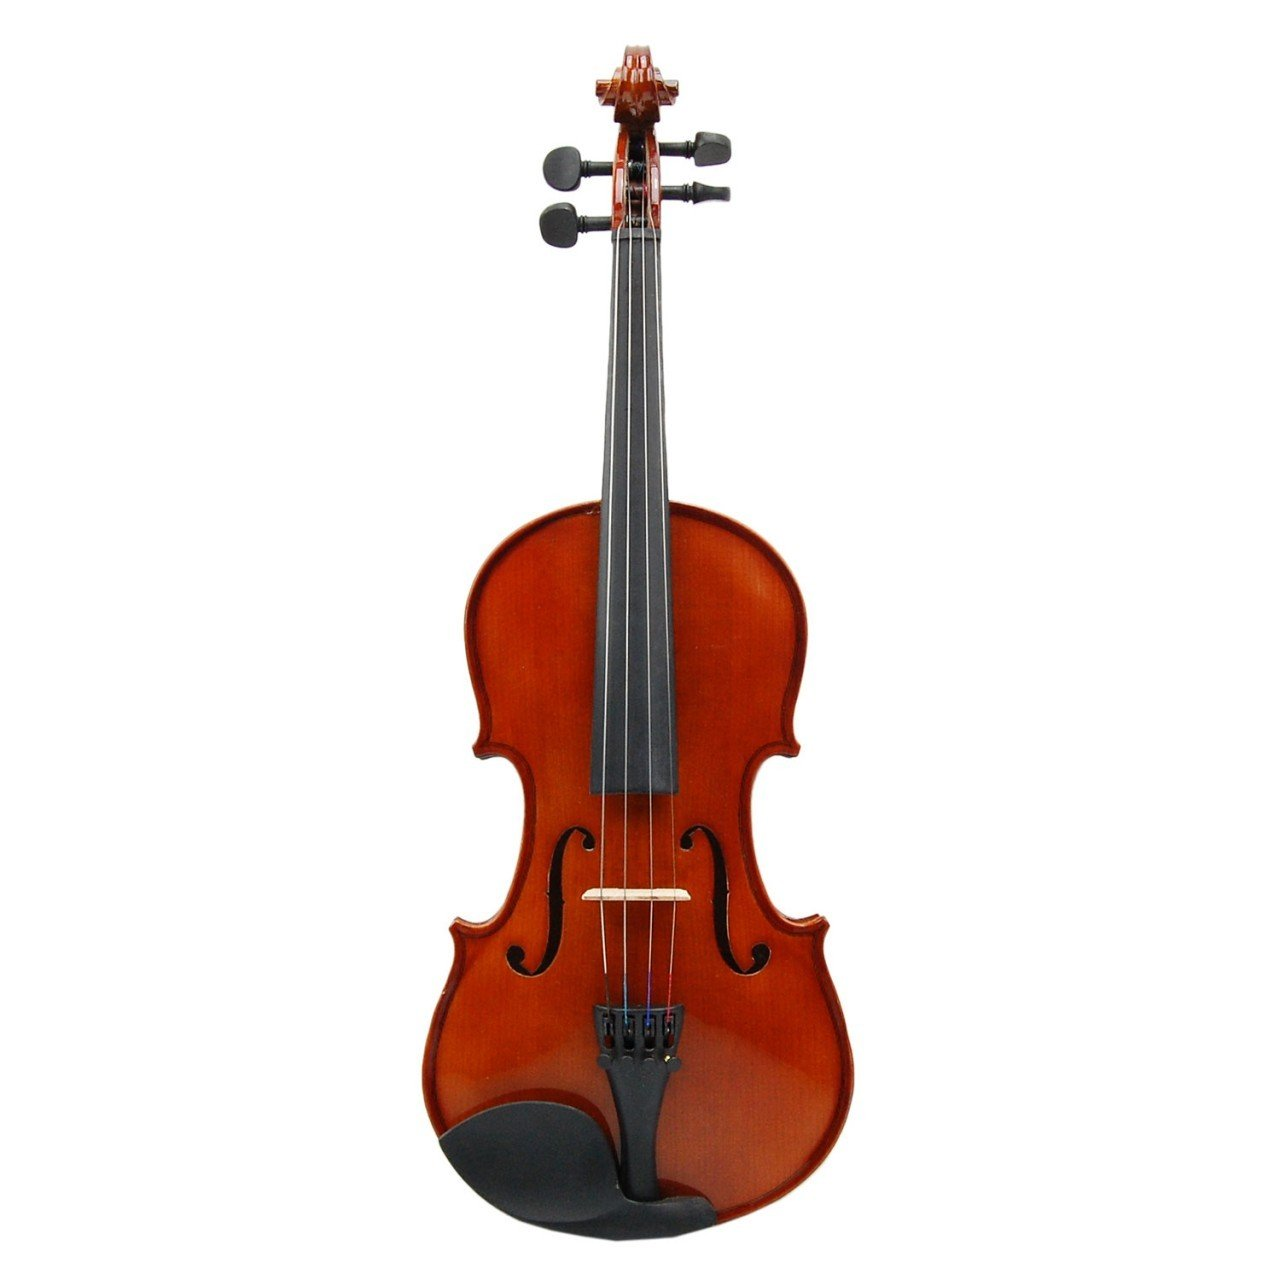 Advanced Beginner Solidwood Violin 1/8 Size Beautiful Inlaid Purfling and Varnished Finish for Students Orchestra School